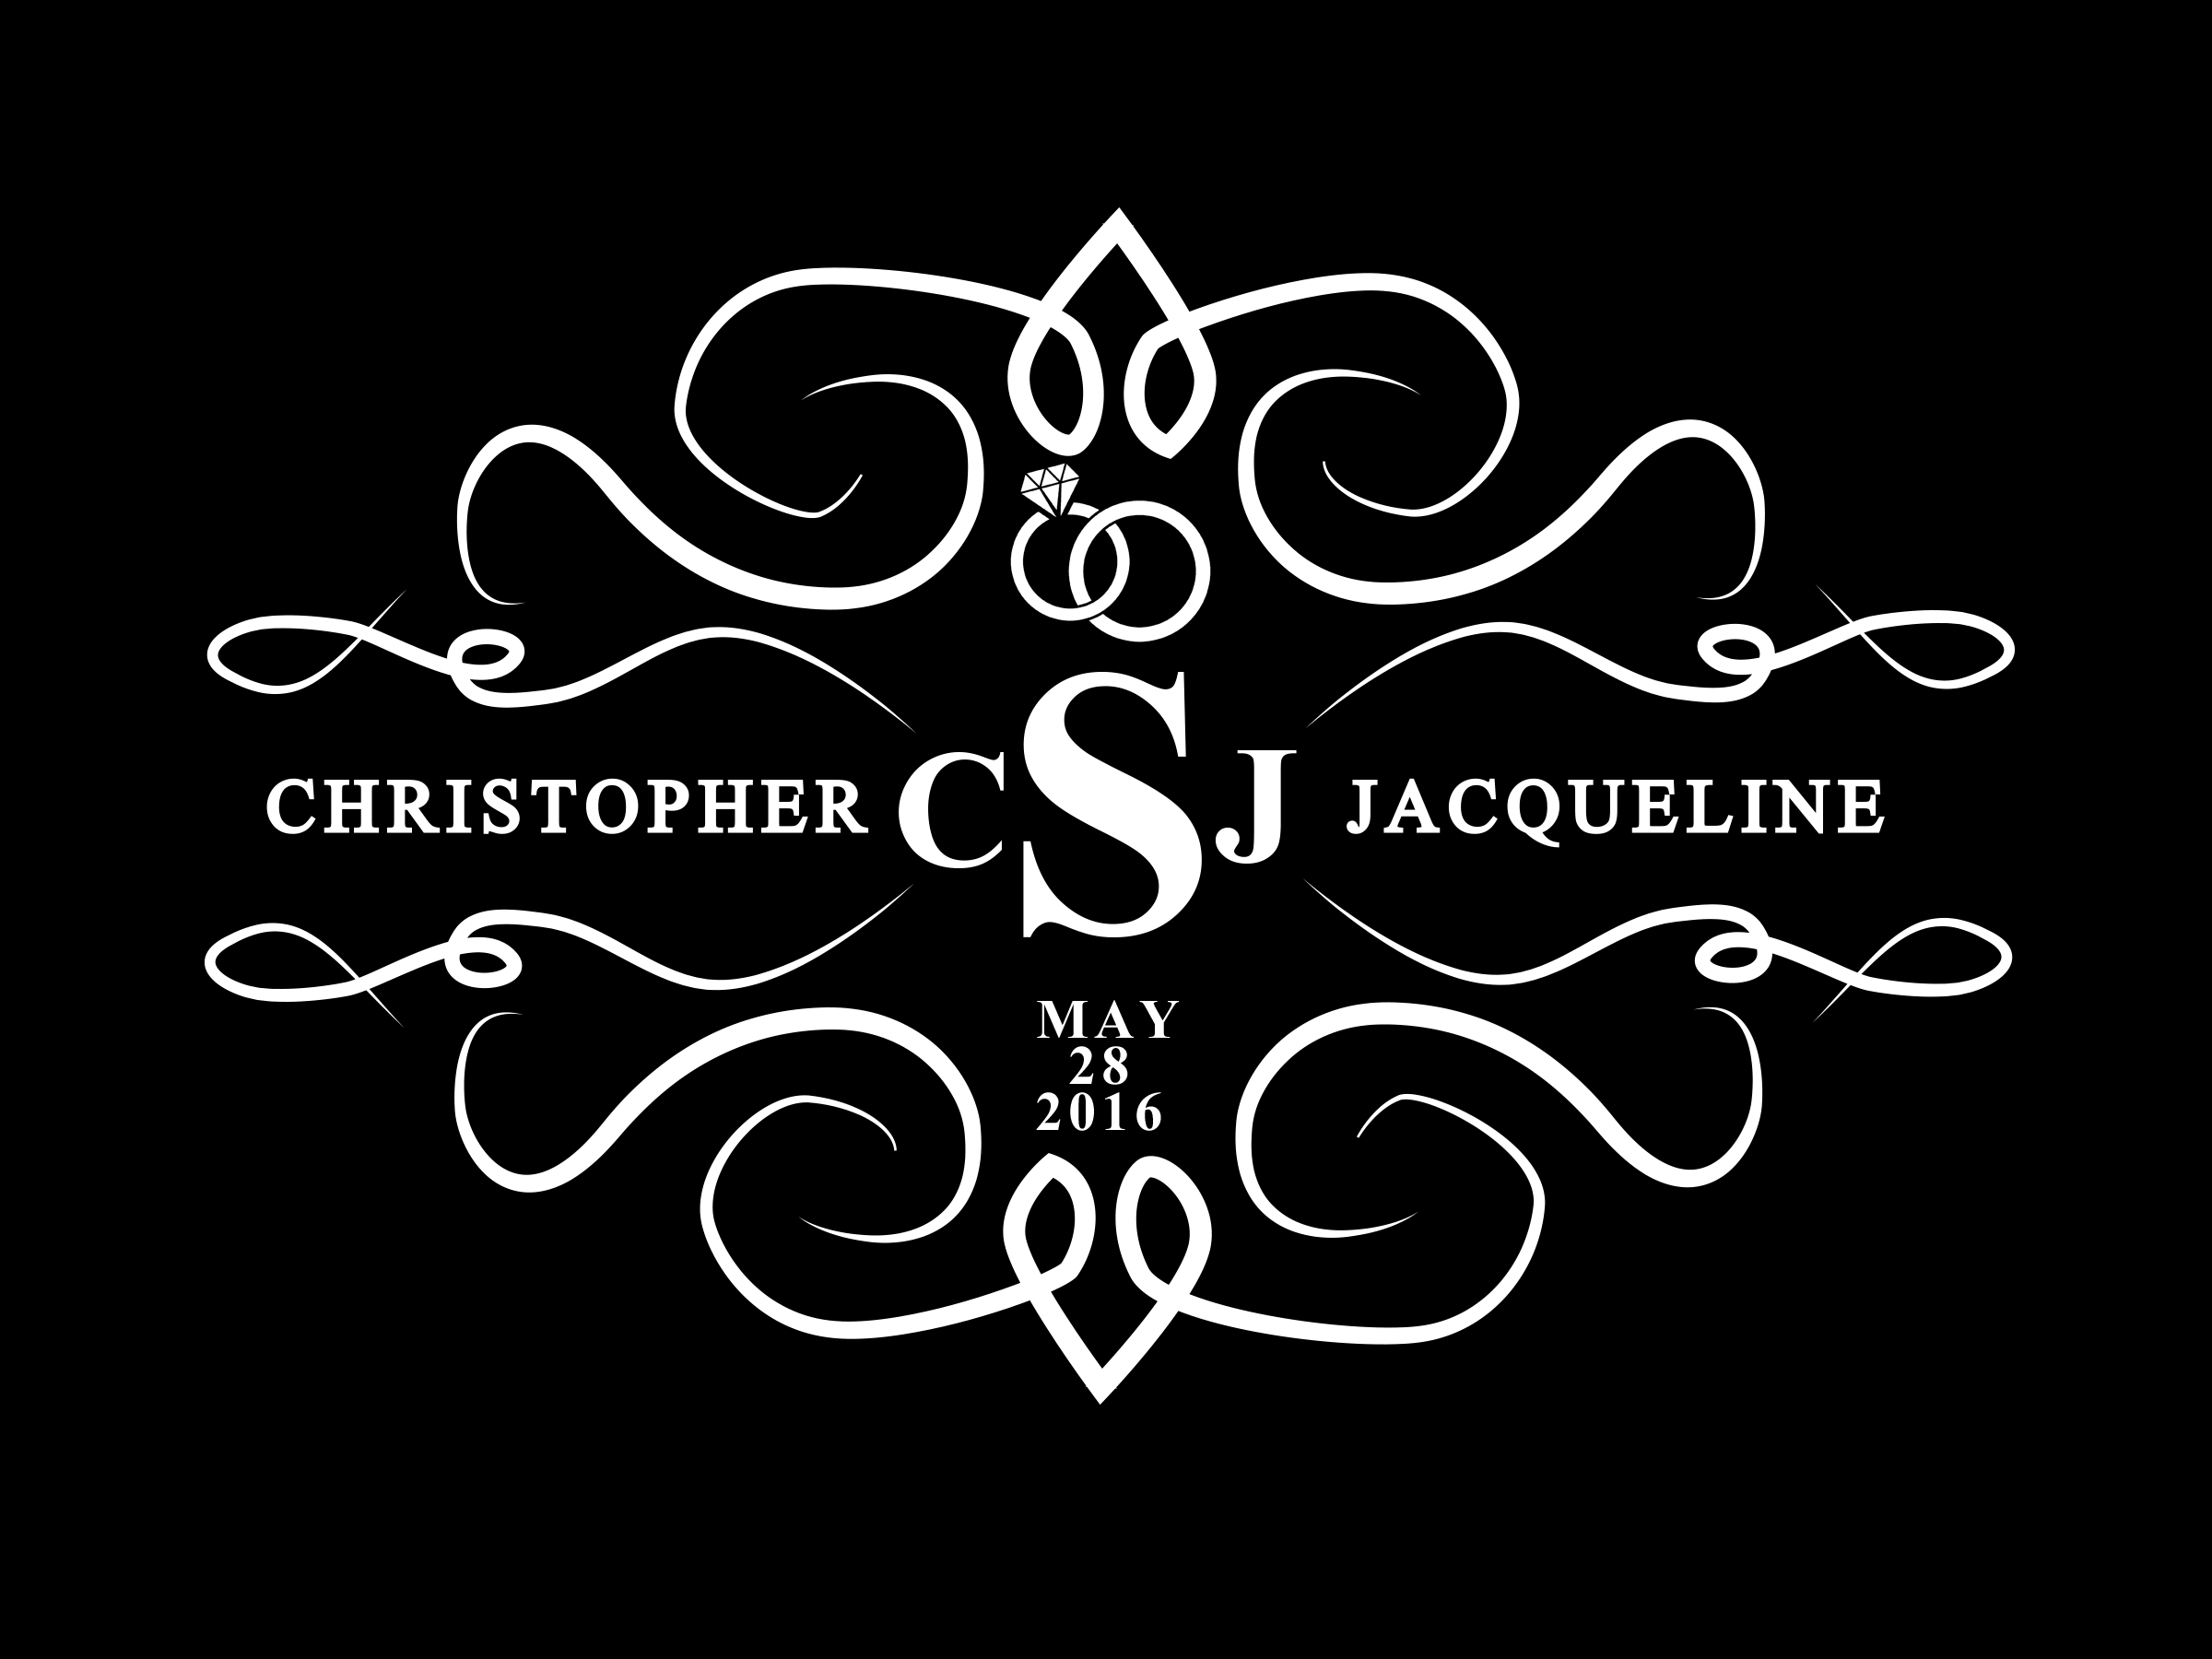 CHRIS AND JACQUELINE monogram 1.jpg